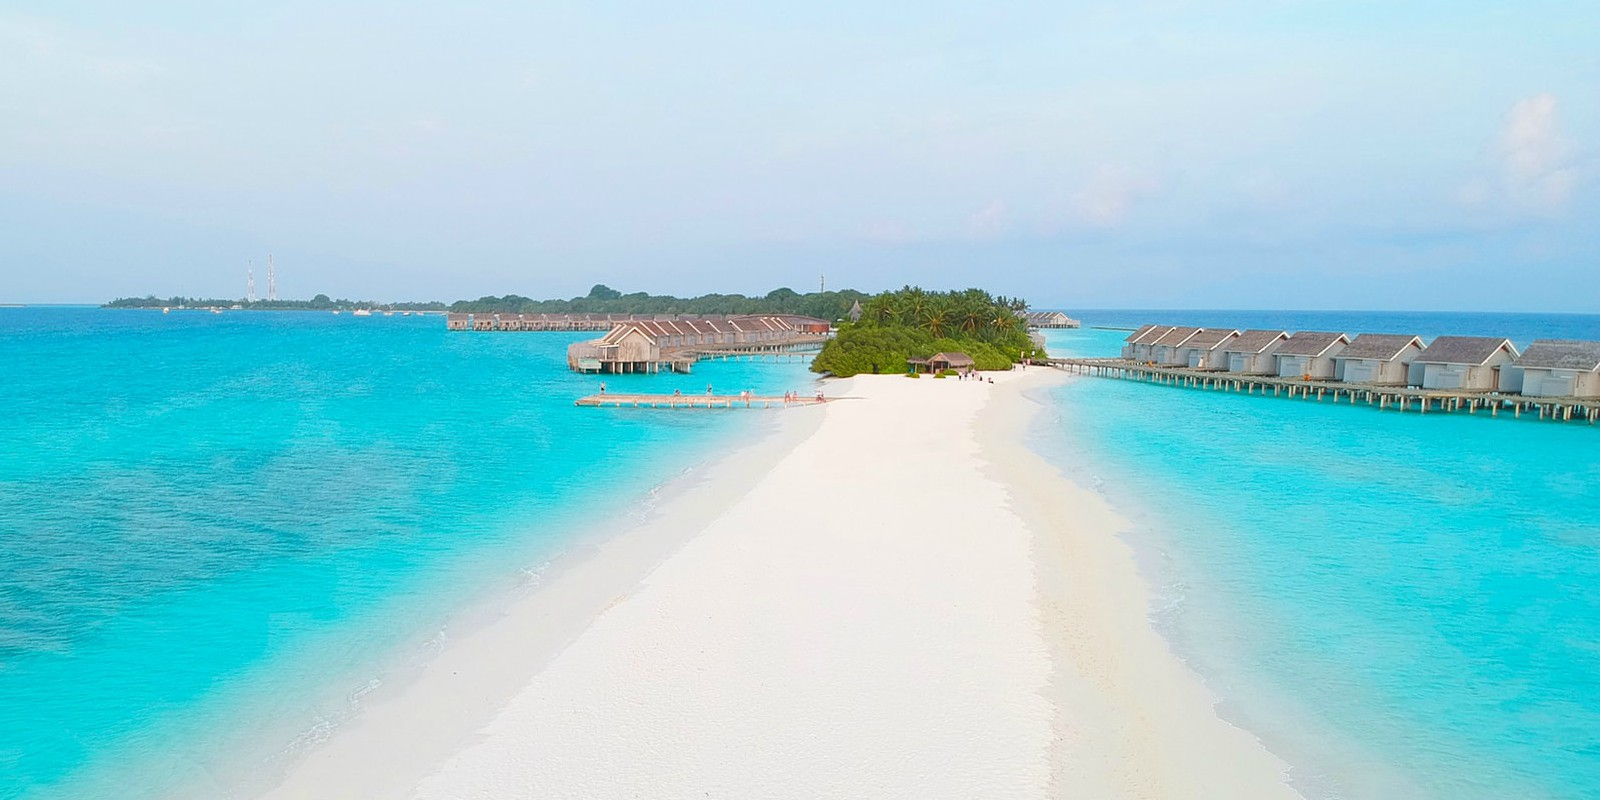 Kurumathi resort in the Maldives